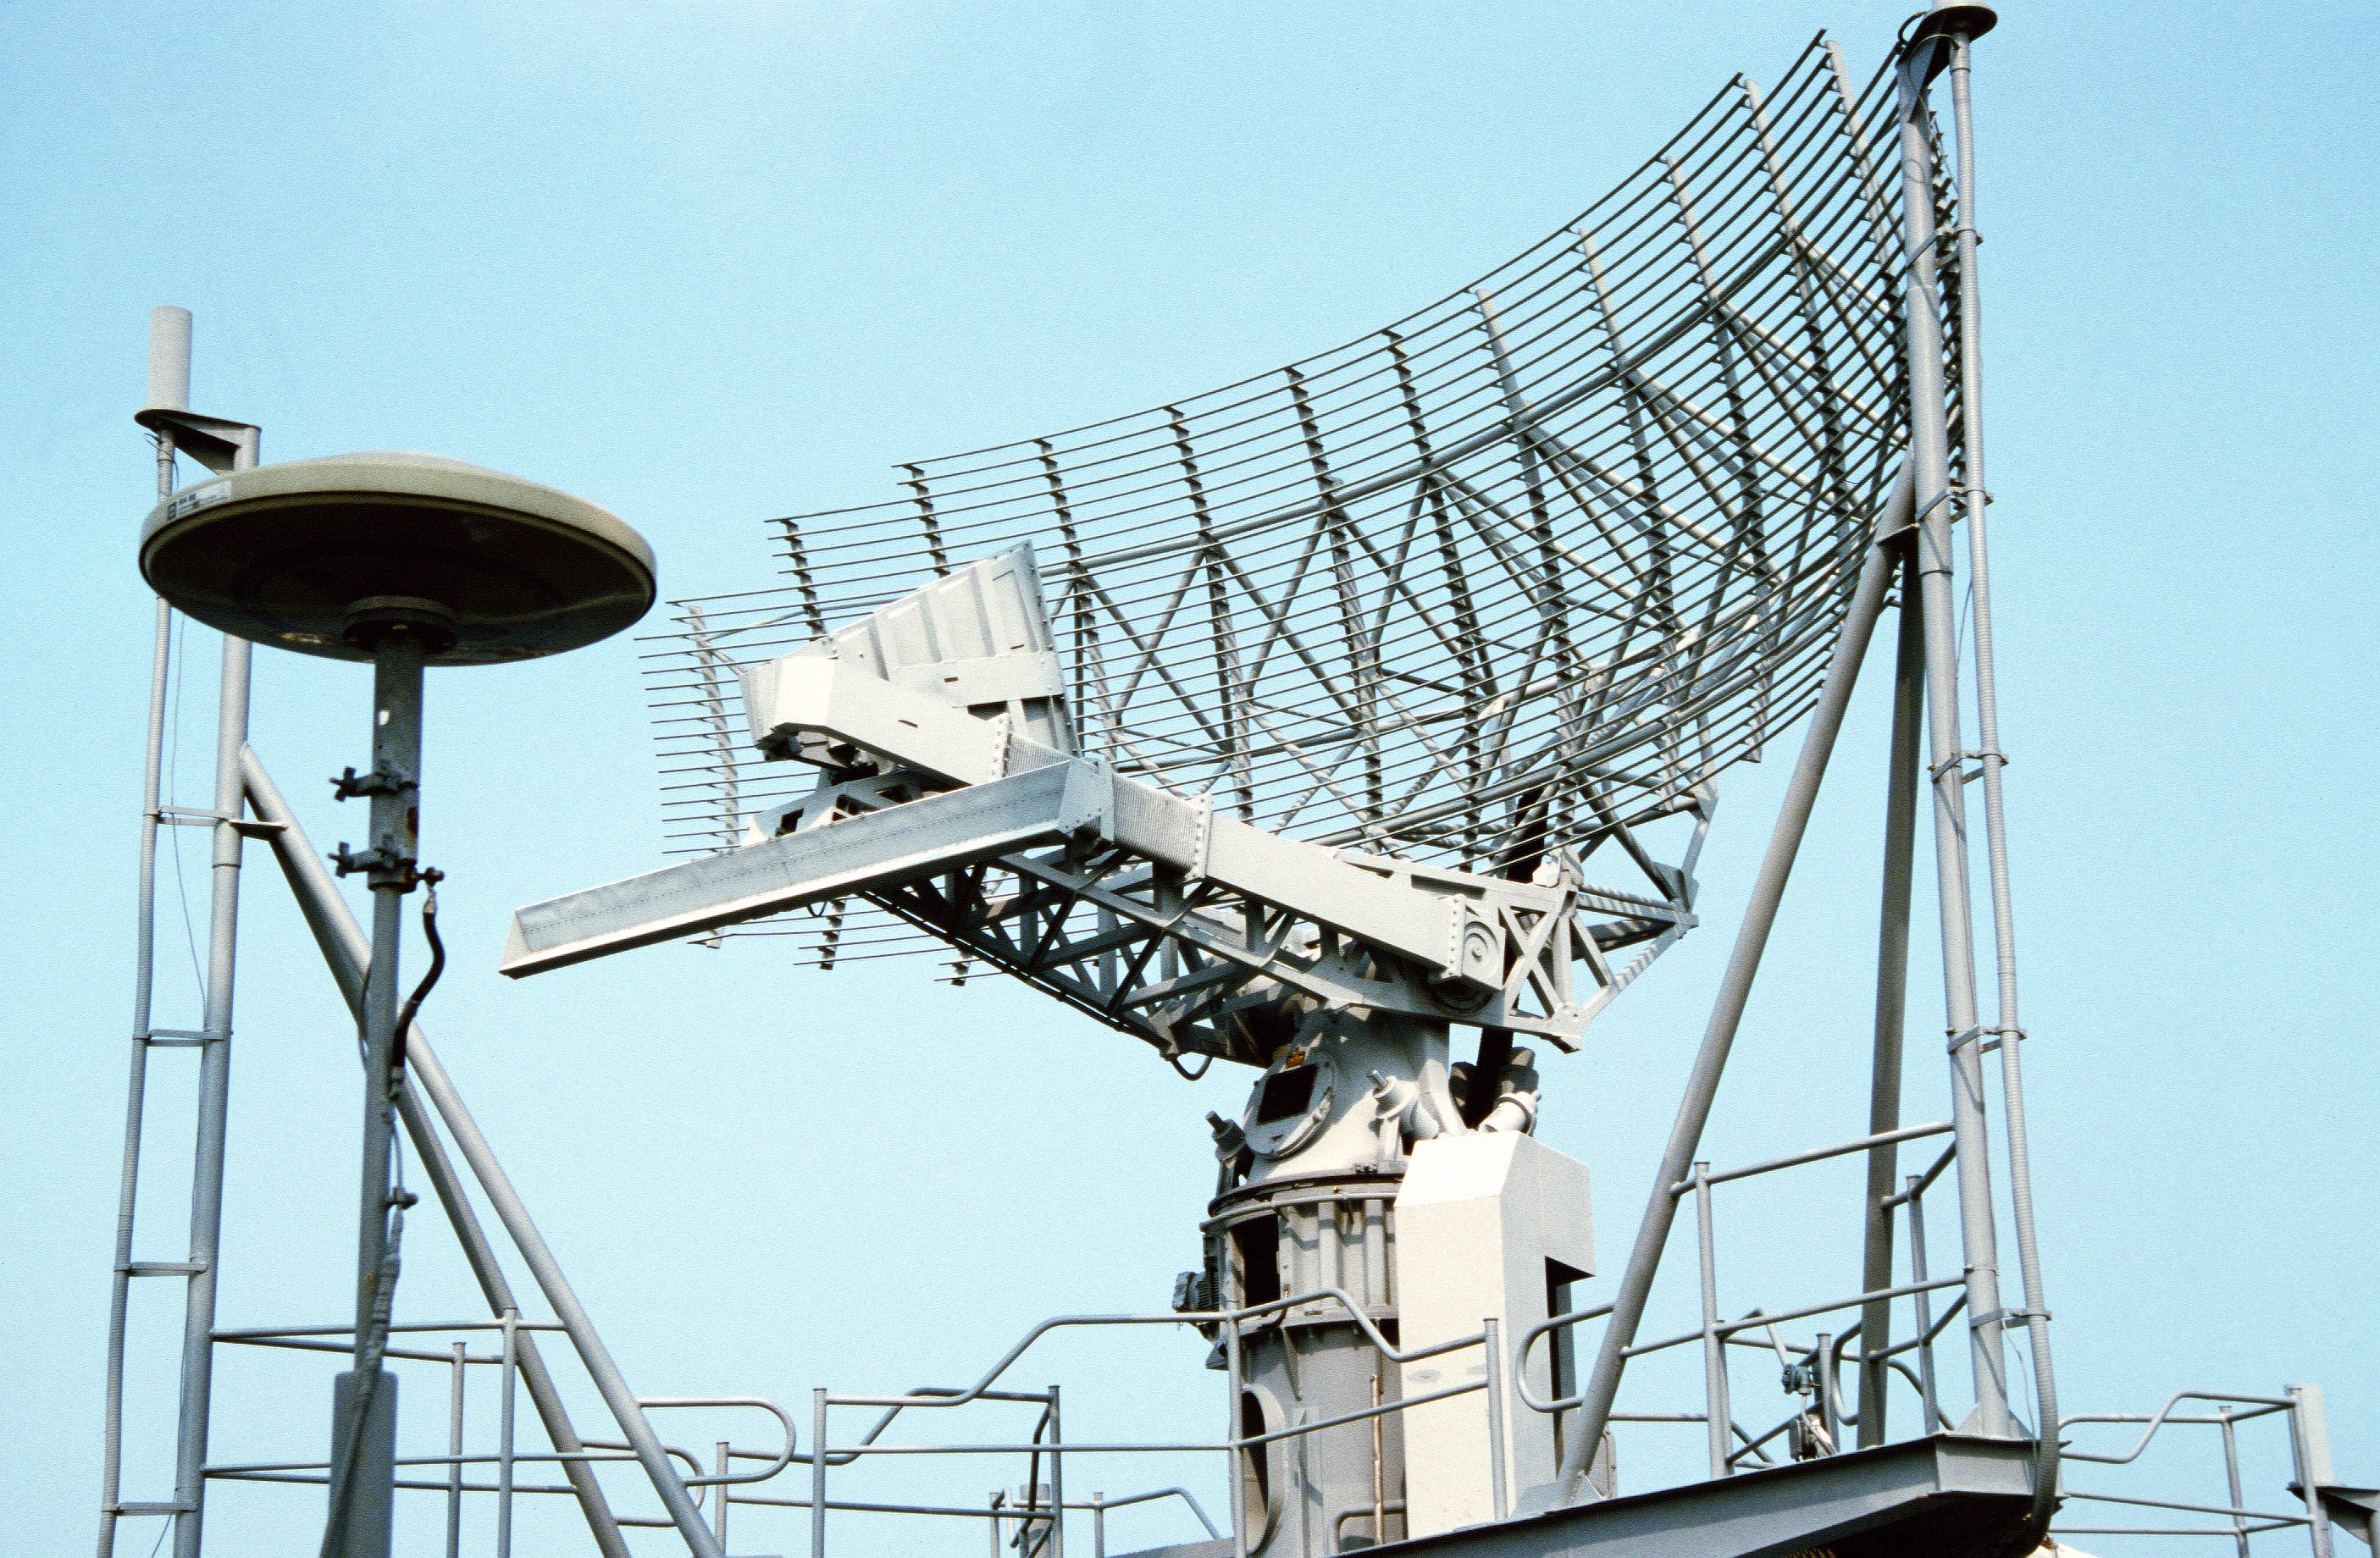 A view of the SPS-49 air search radar antenna mounted atop the lattice mast aboard the nuclear-powered aircraft carrier USS ABRAHAM LINCOLN (CVN 72).